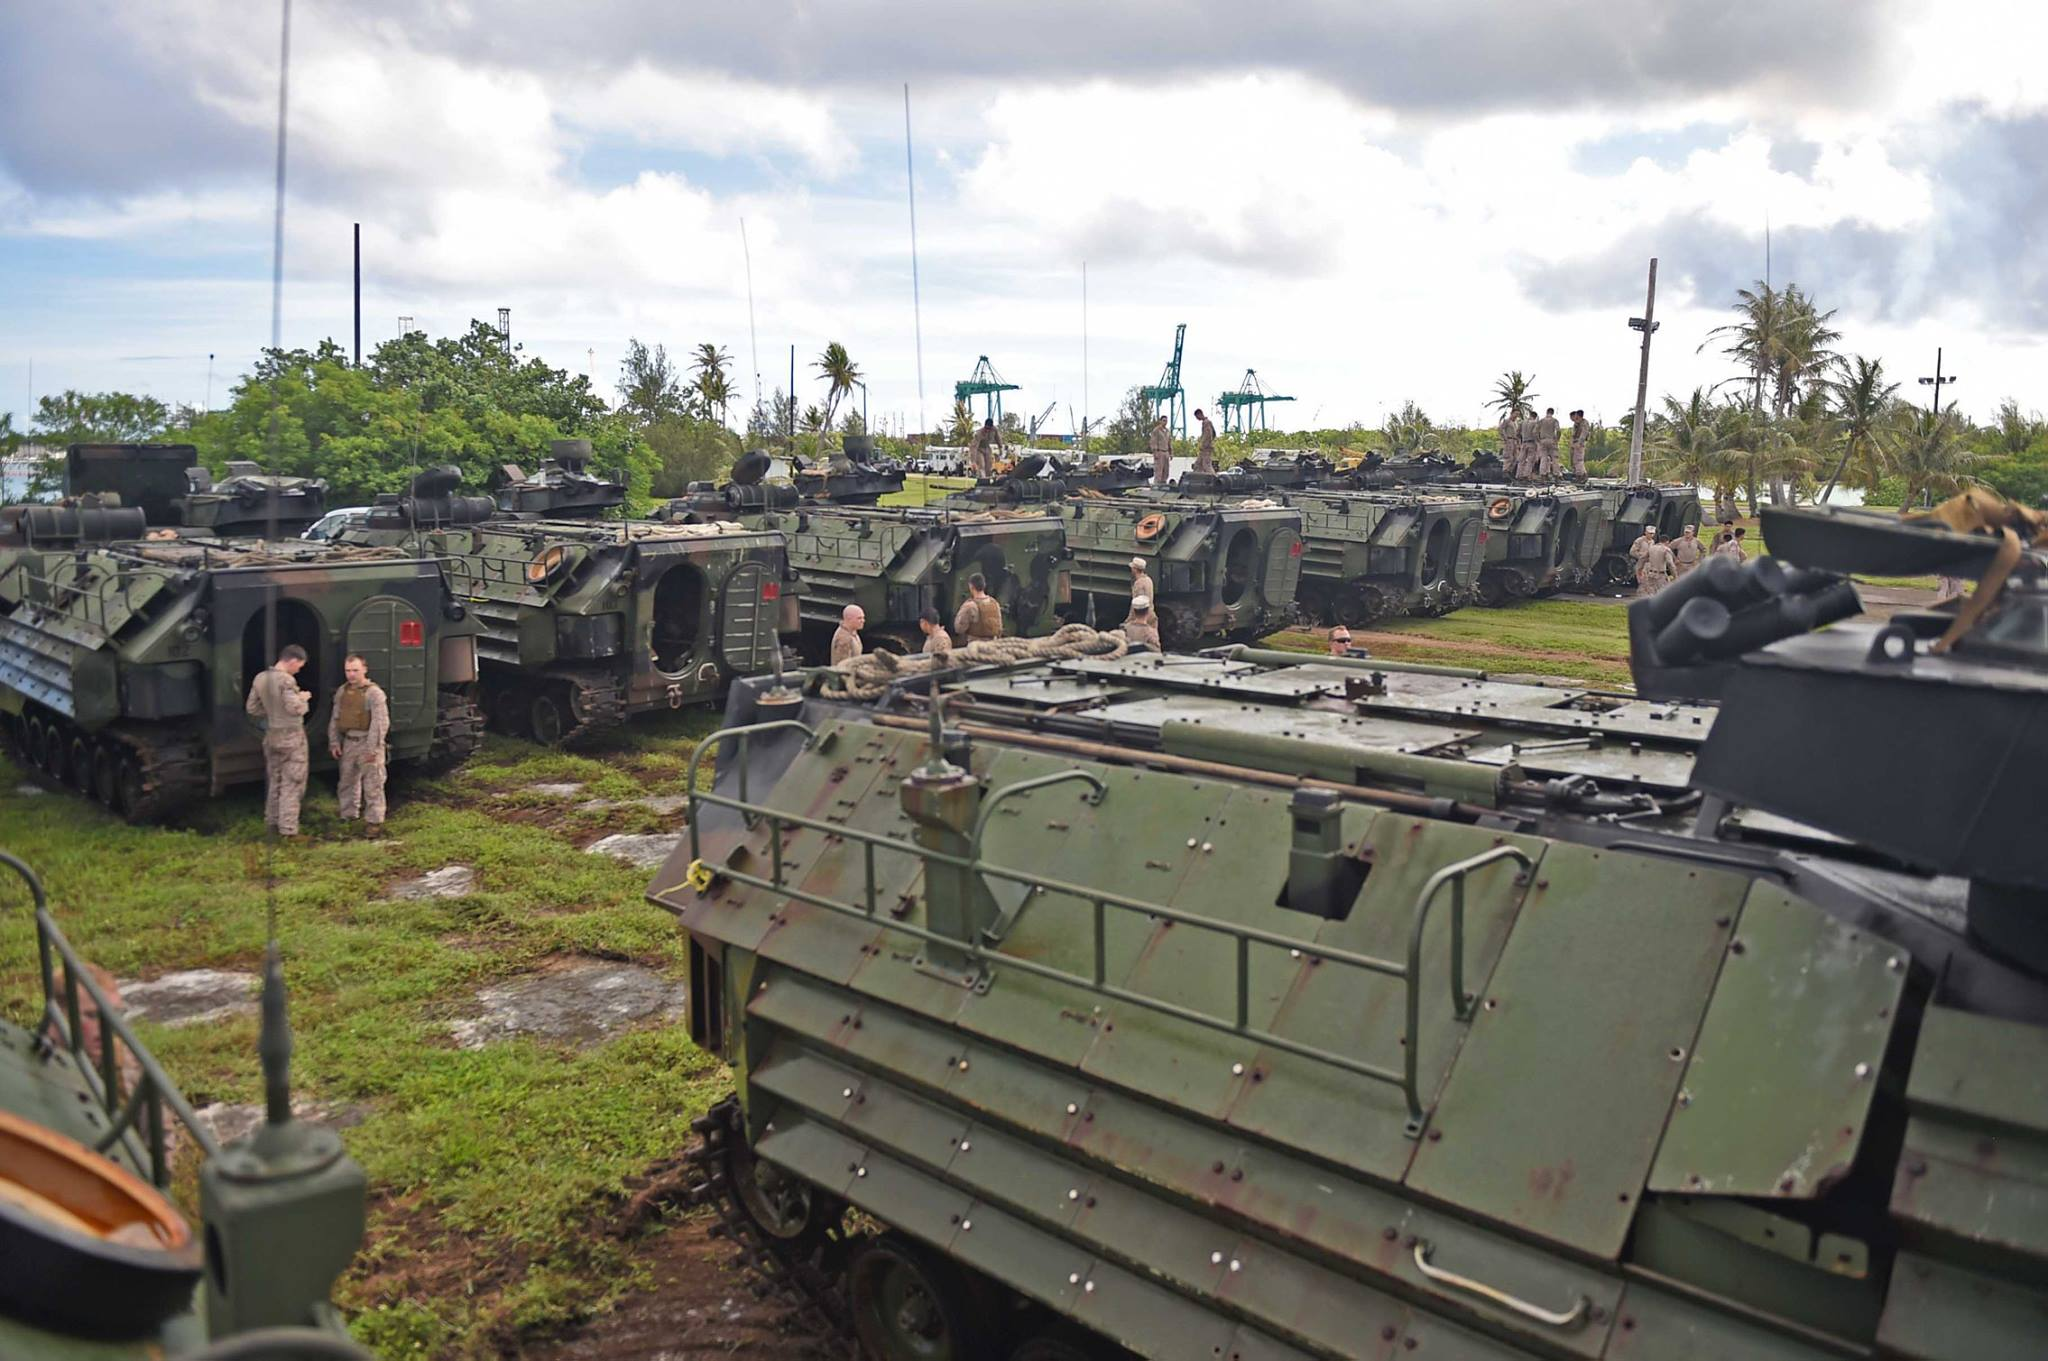 Amphibious Assault Vehicles from the 31st Marine Expeditionary Unit (MEU) arrive at the beach to allow for supplies and machinery to be loaded into the well deck of the amphibious dock landing ship USS Ashland (LSD 48) for disaster relief efforts in Saipan after Typhoon Soudelor. The 31st MEU is embarked on the amphibious dock landing ship USS Ashland (LSD 48) and is on patrol in the U.S. 7th Fleet area of operations.